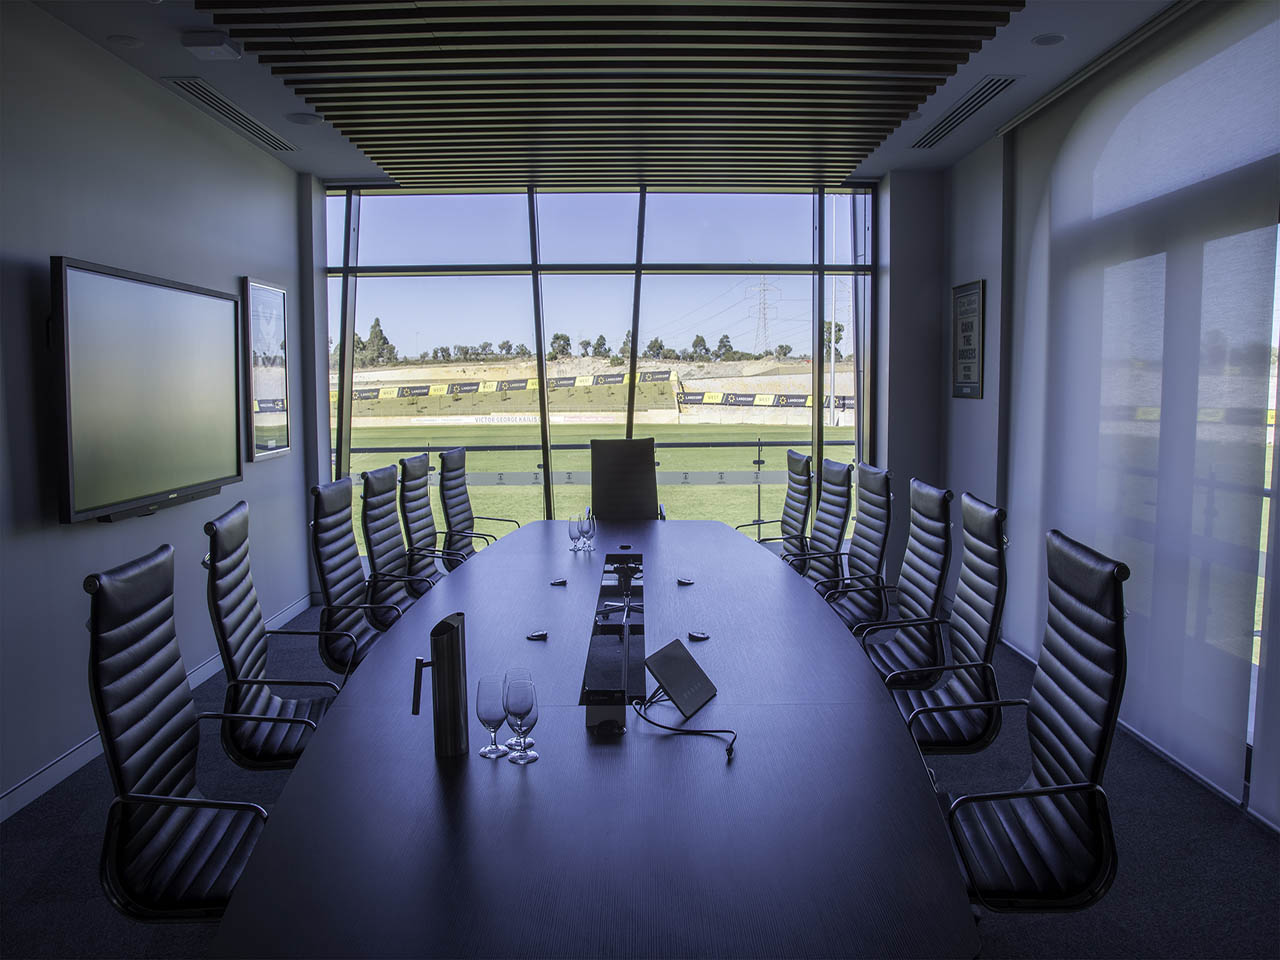 Boardroom Style Table And Chairs With View Across The Sports Oval